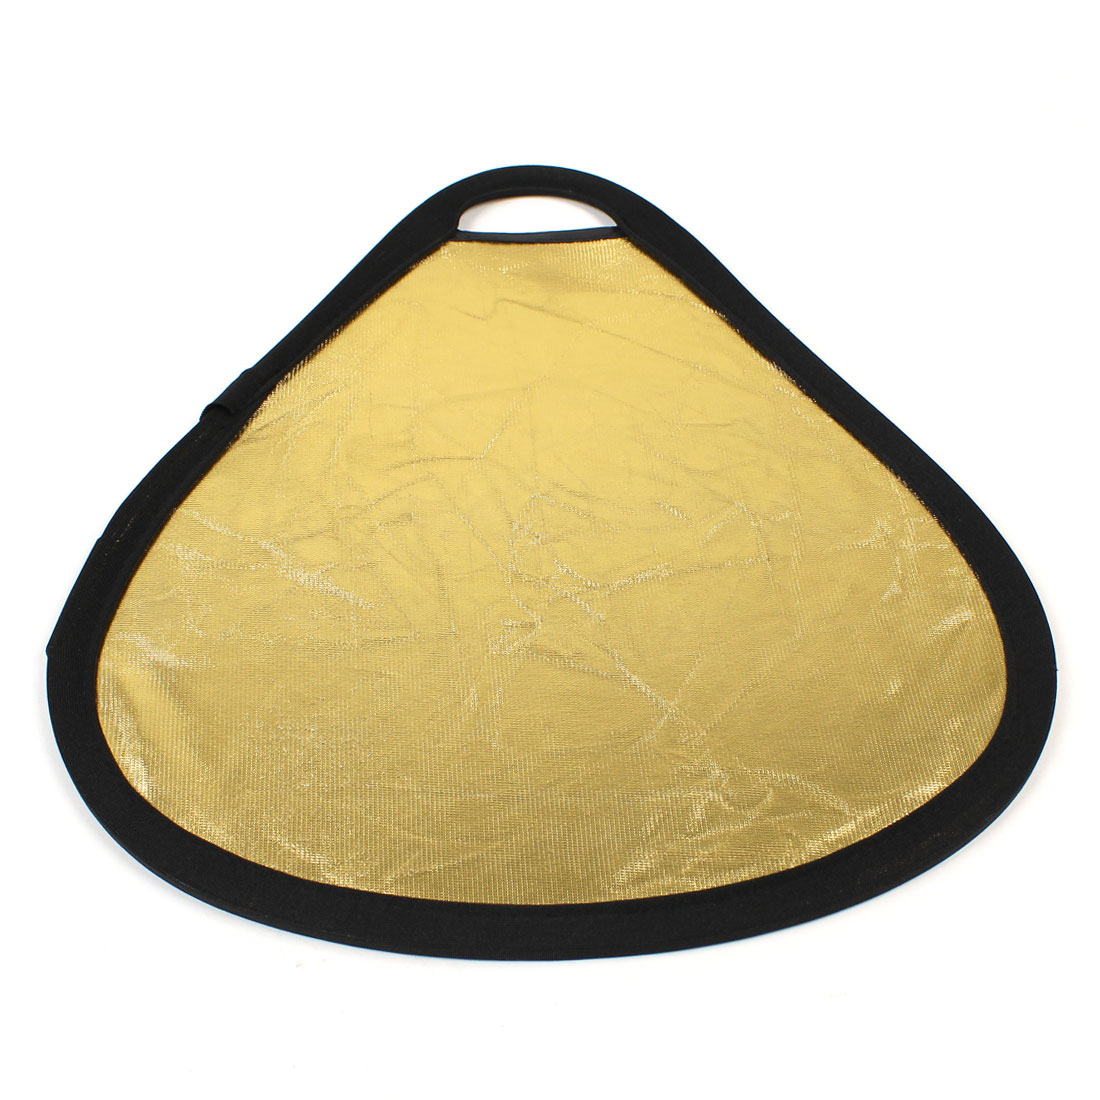 Studio Photography Handheld Triangle Silver/Gold 2 in 1 Light Reflector 30cm